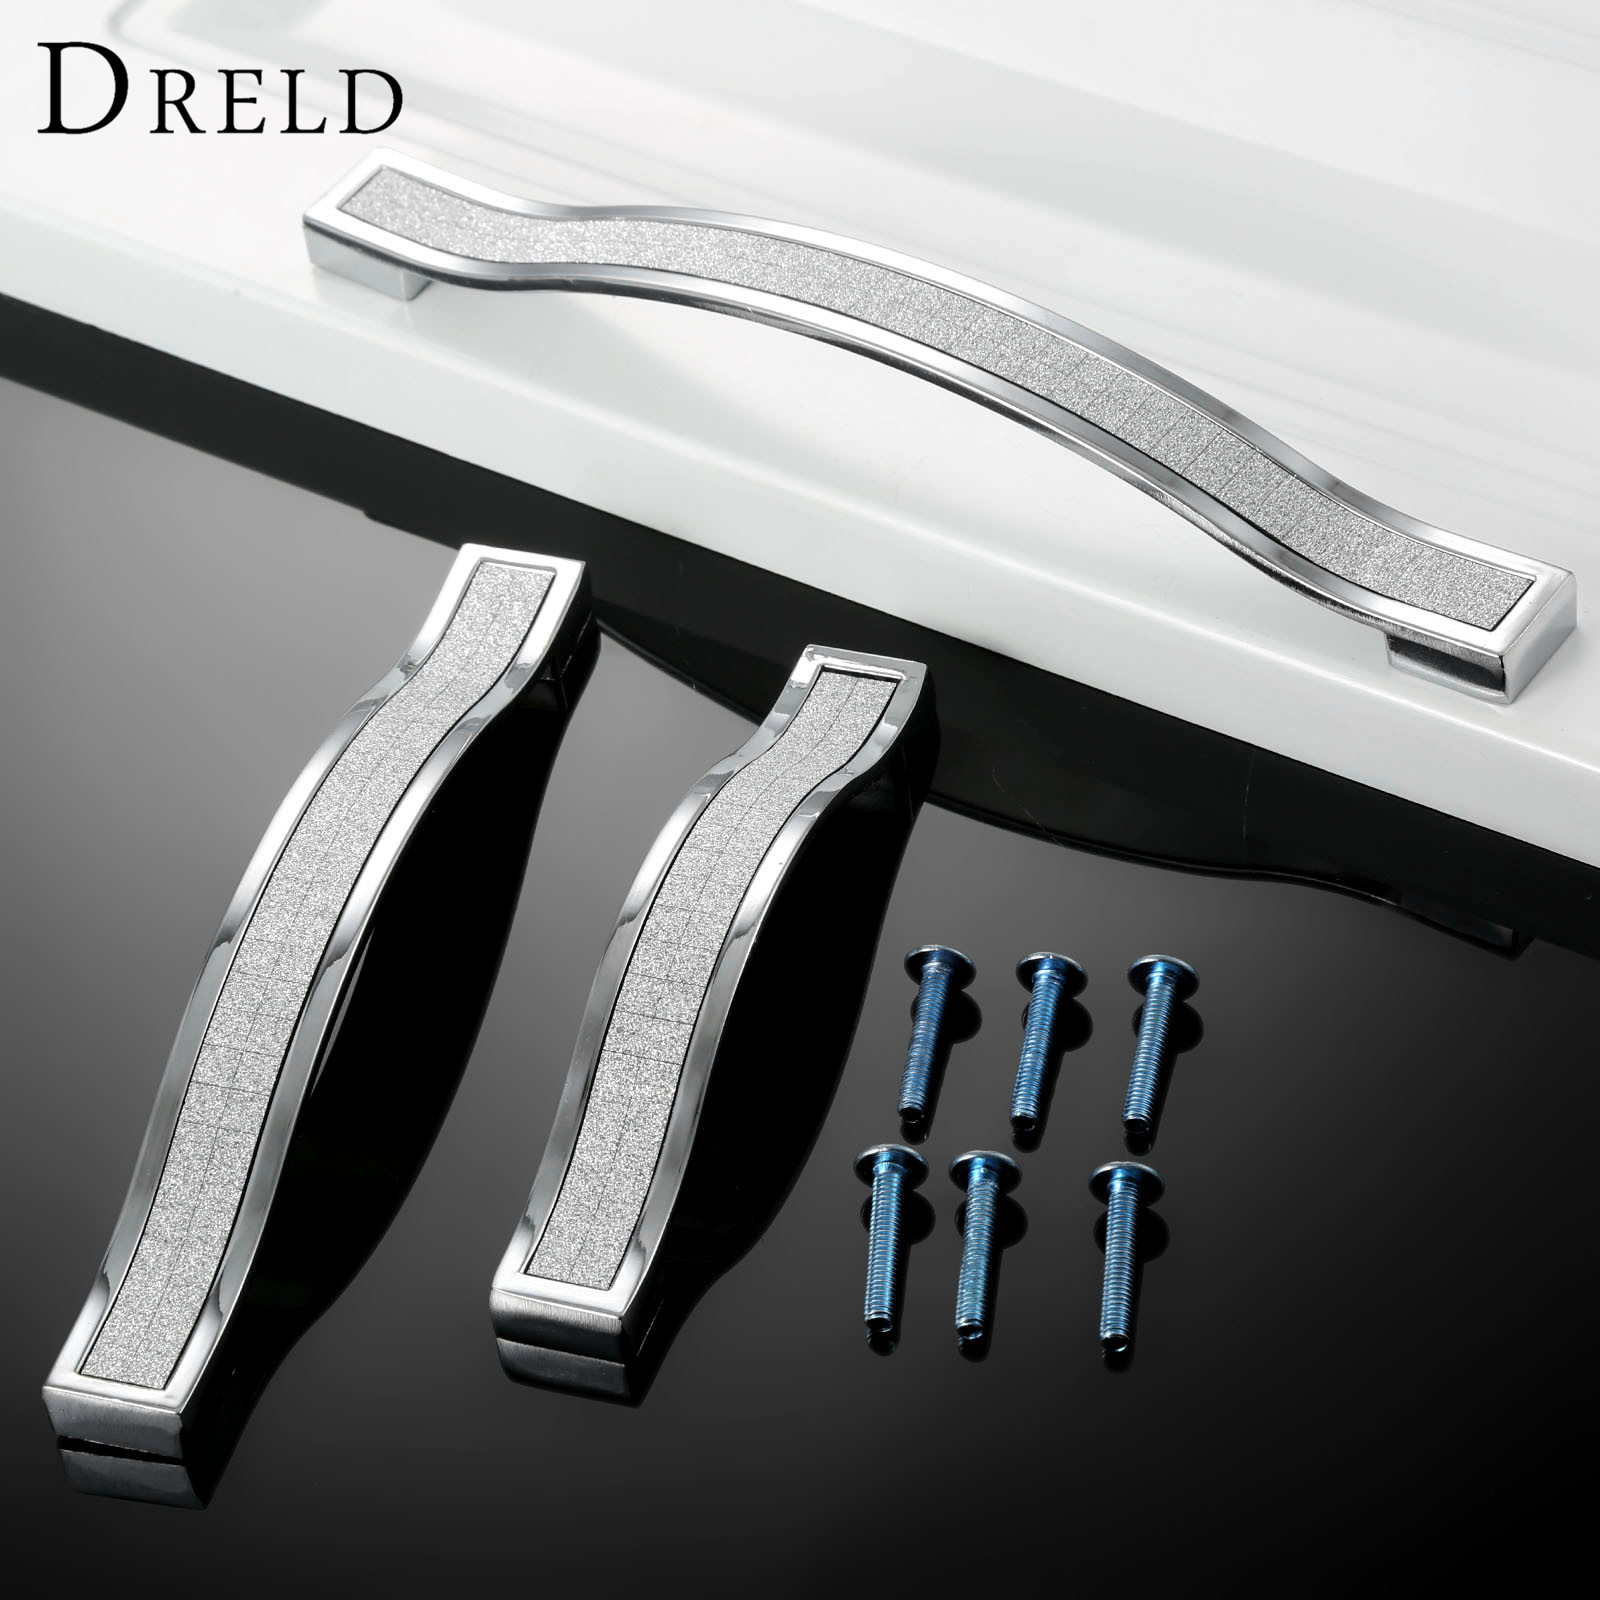 DRELD 96/128/160mm Furniture Handle Modern Cabinet Knobs and Handles Door Cupboard Drawer Kitchen Pull Handle Furniture Hardware dreld 96 128 160mm furniture handle modern cabinet knobs and handles door cupboard drawer kitchen pull handle furniture hardware